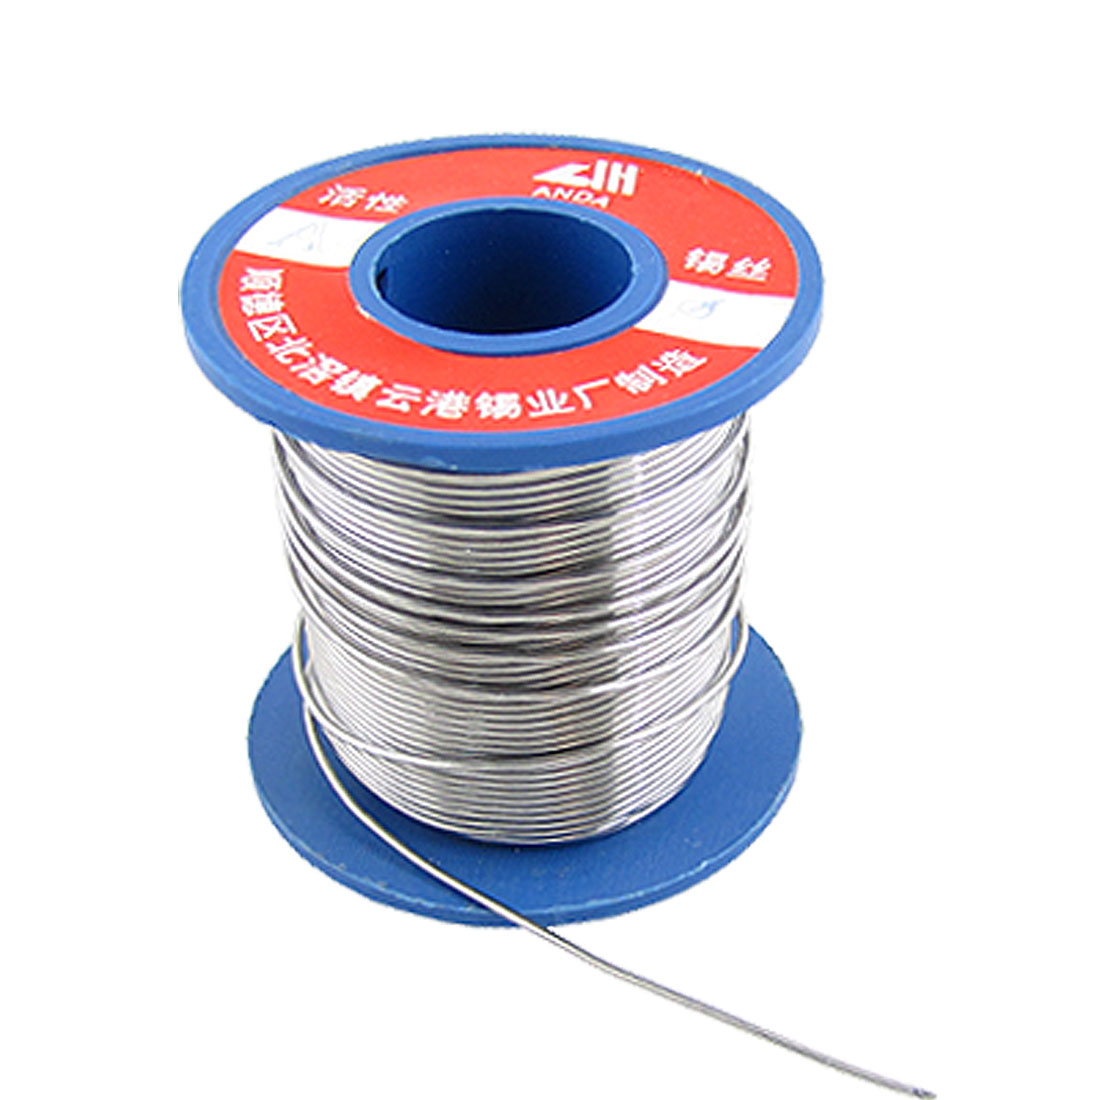 0.8mm 300g 63/37 Rosin Flux Cored Soldering Tin Lead Roll Solder Wire Spool